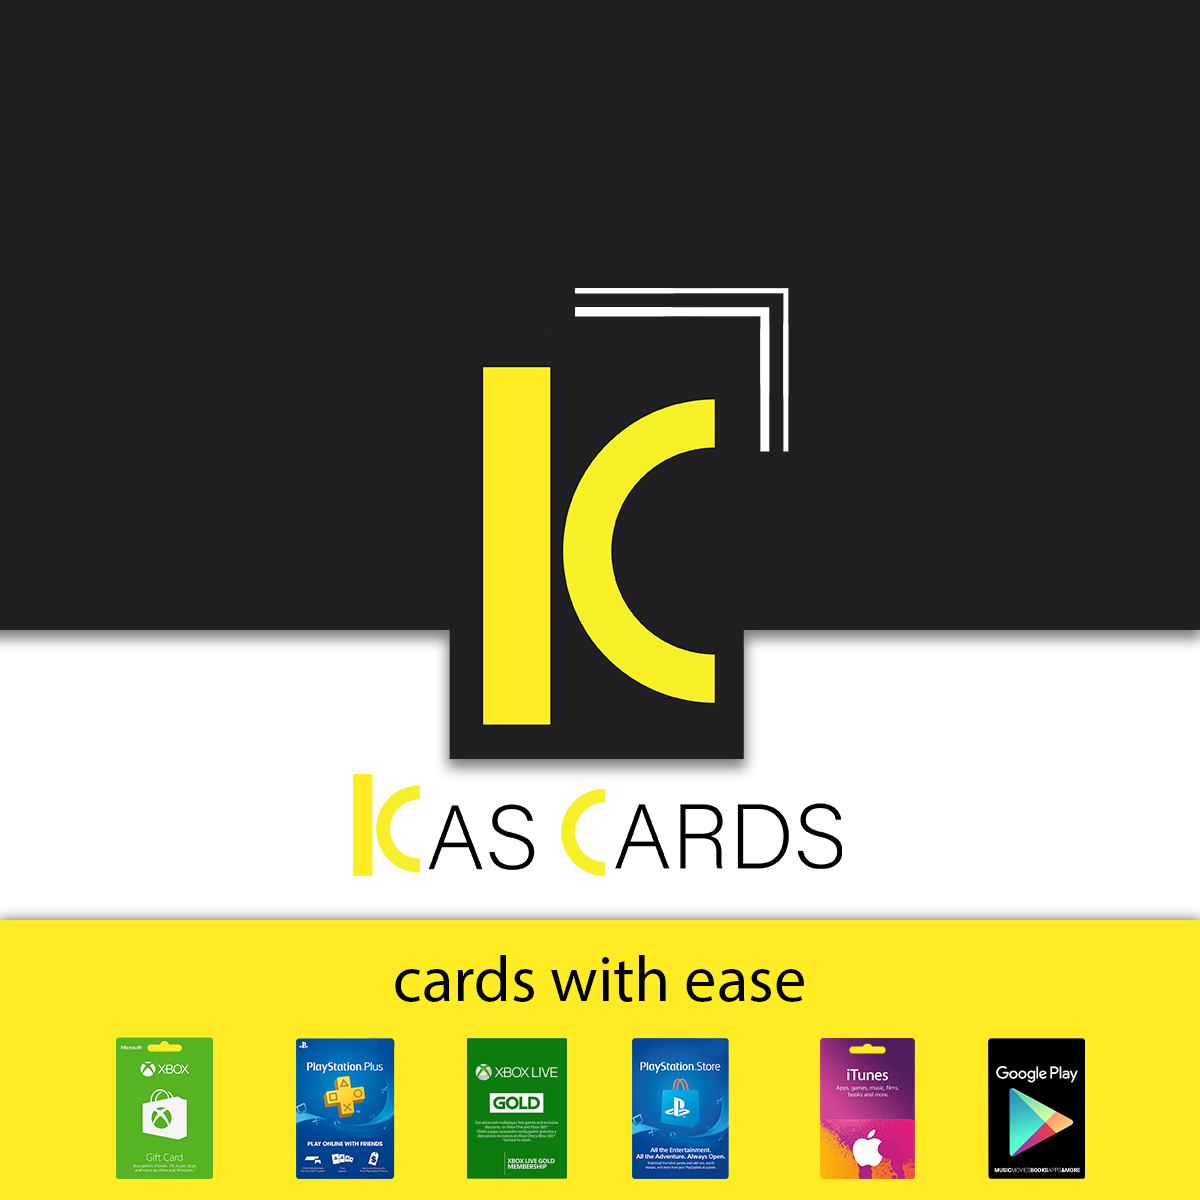 KasCards image